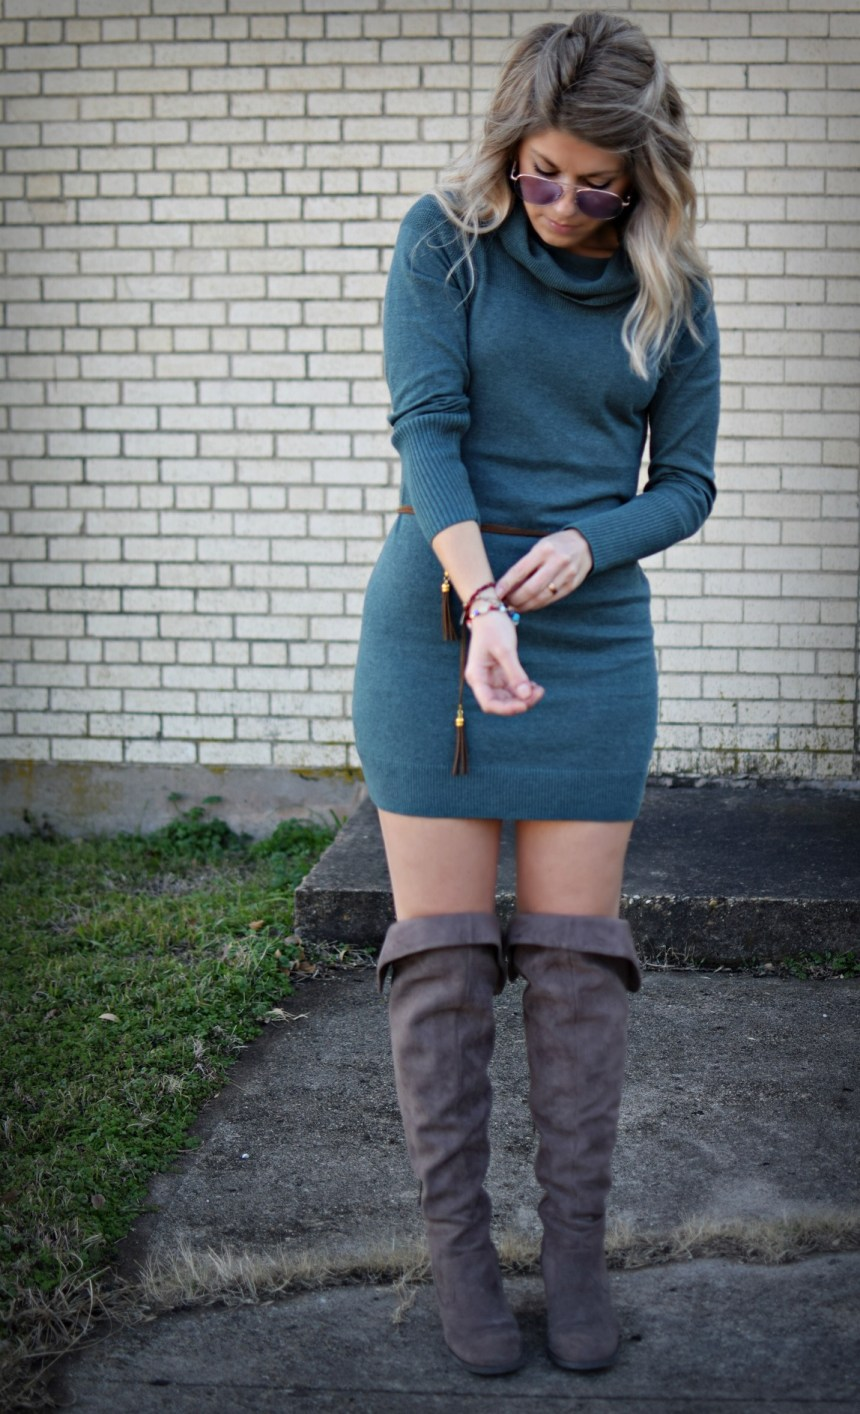 boho chic sweaterdress and sweater with knee high boots